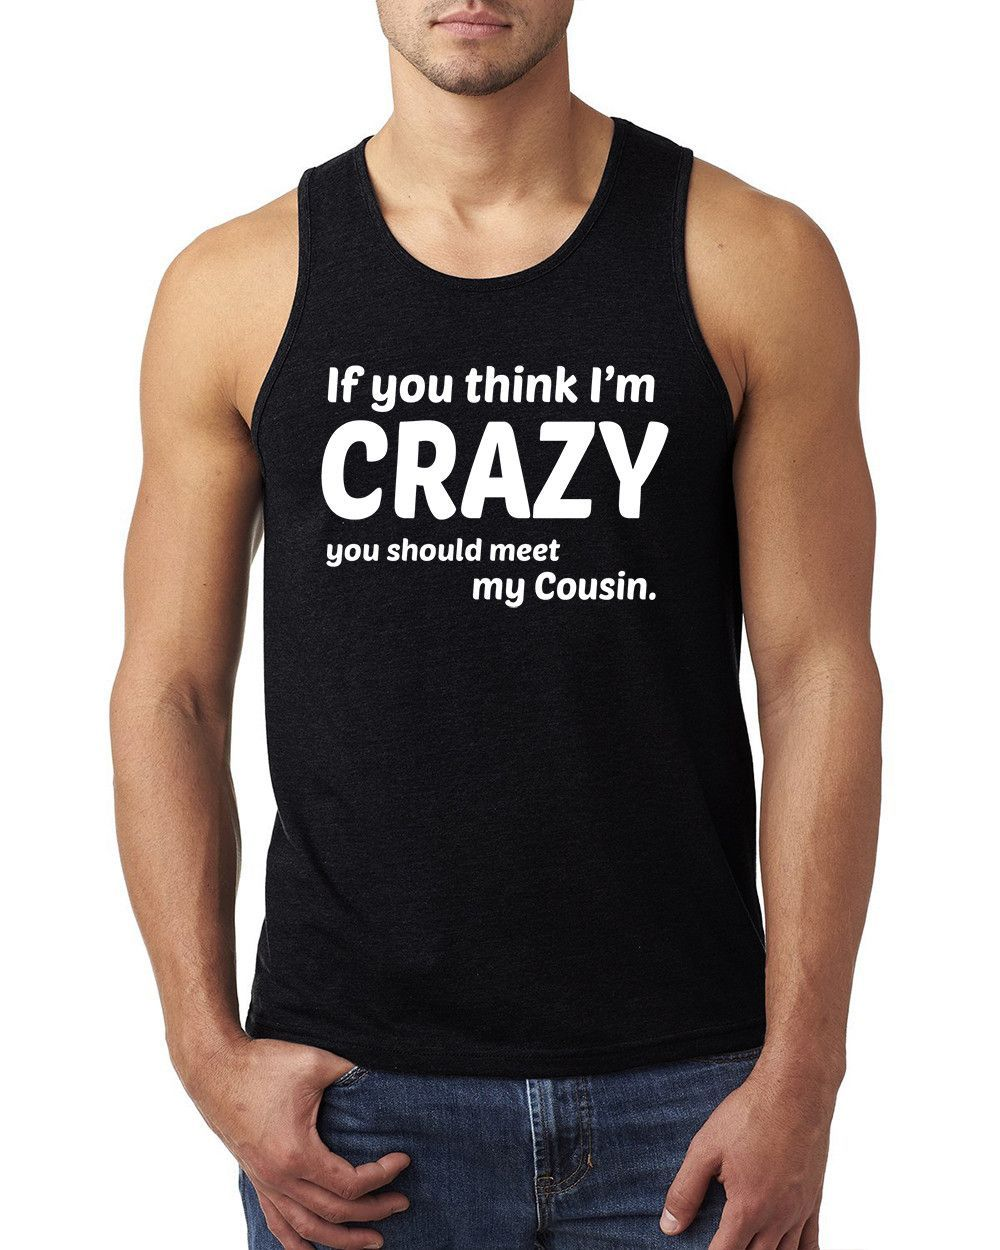 If you think I'm crazy you should meet my cousin Tank Top #cousin #cousins #cousinsday #cousinfun #cousintime